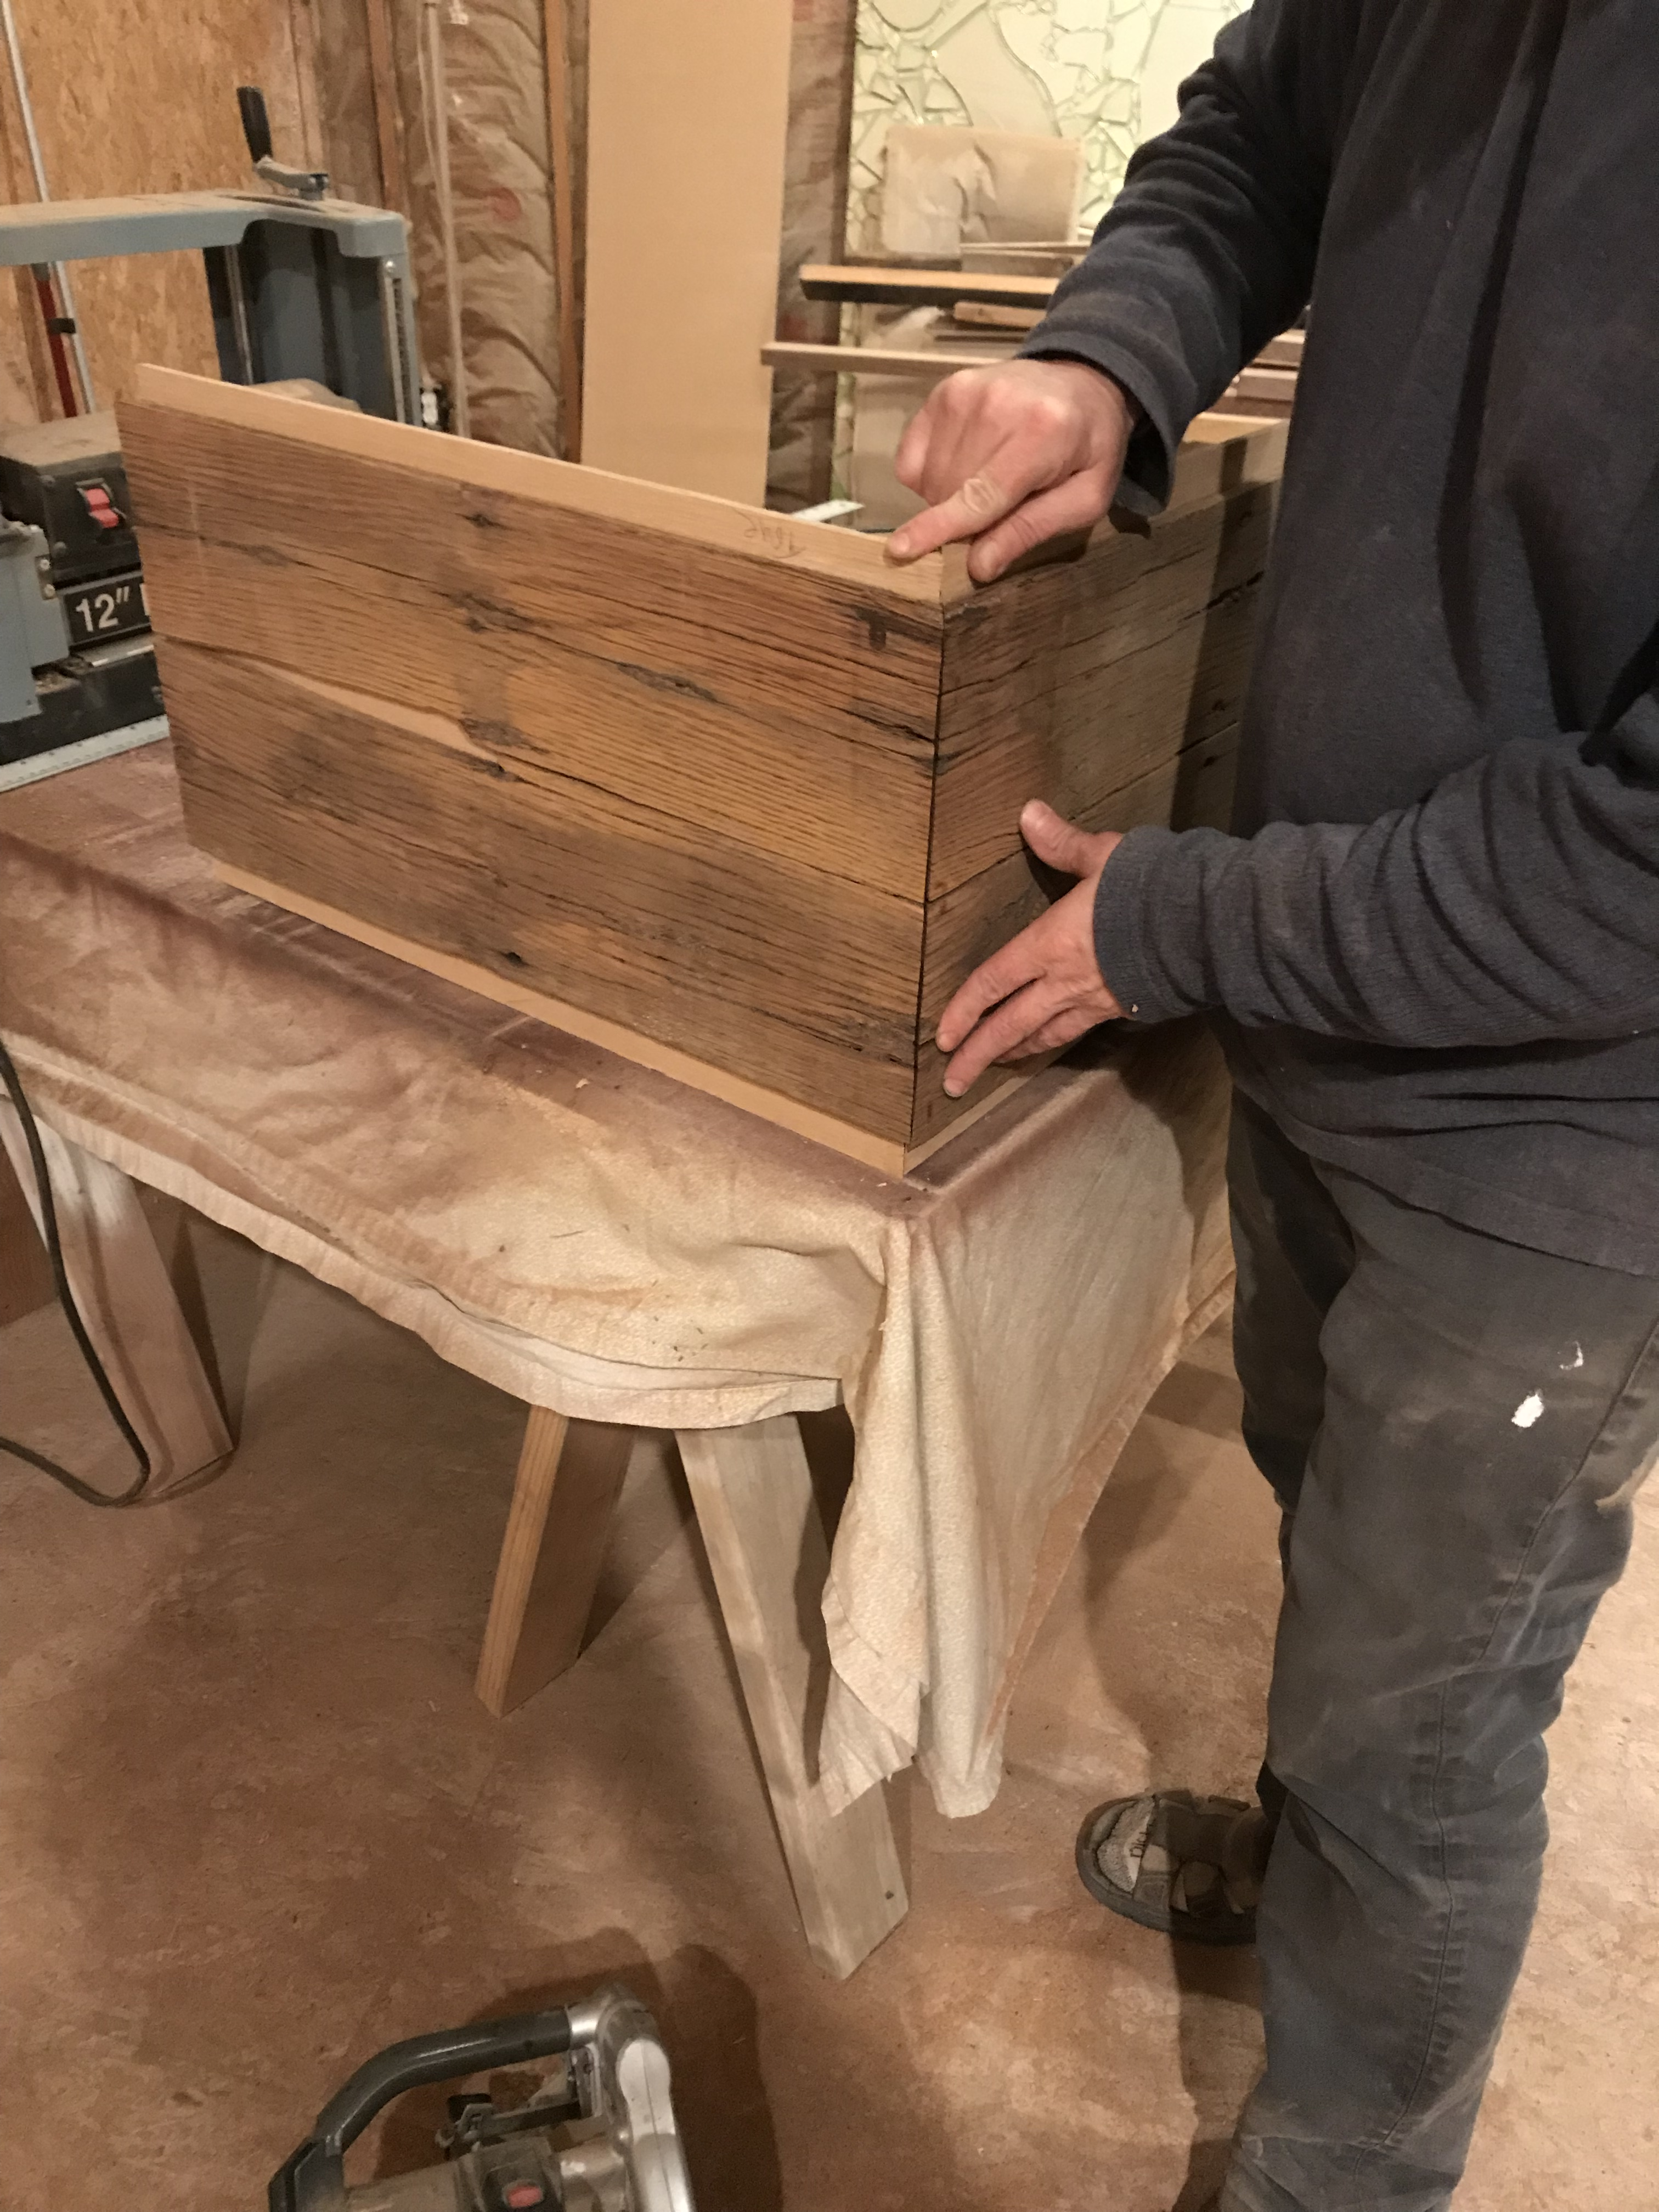 Reclaimed oak barn wood layed up on quarter inch material and miter cut for a continuous waterfall edge, sitting on a table in a work shop with a man holding the edges together.